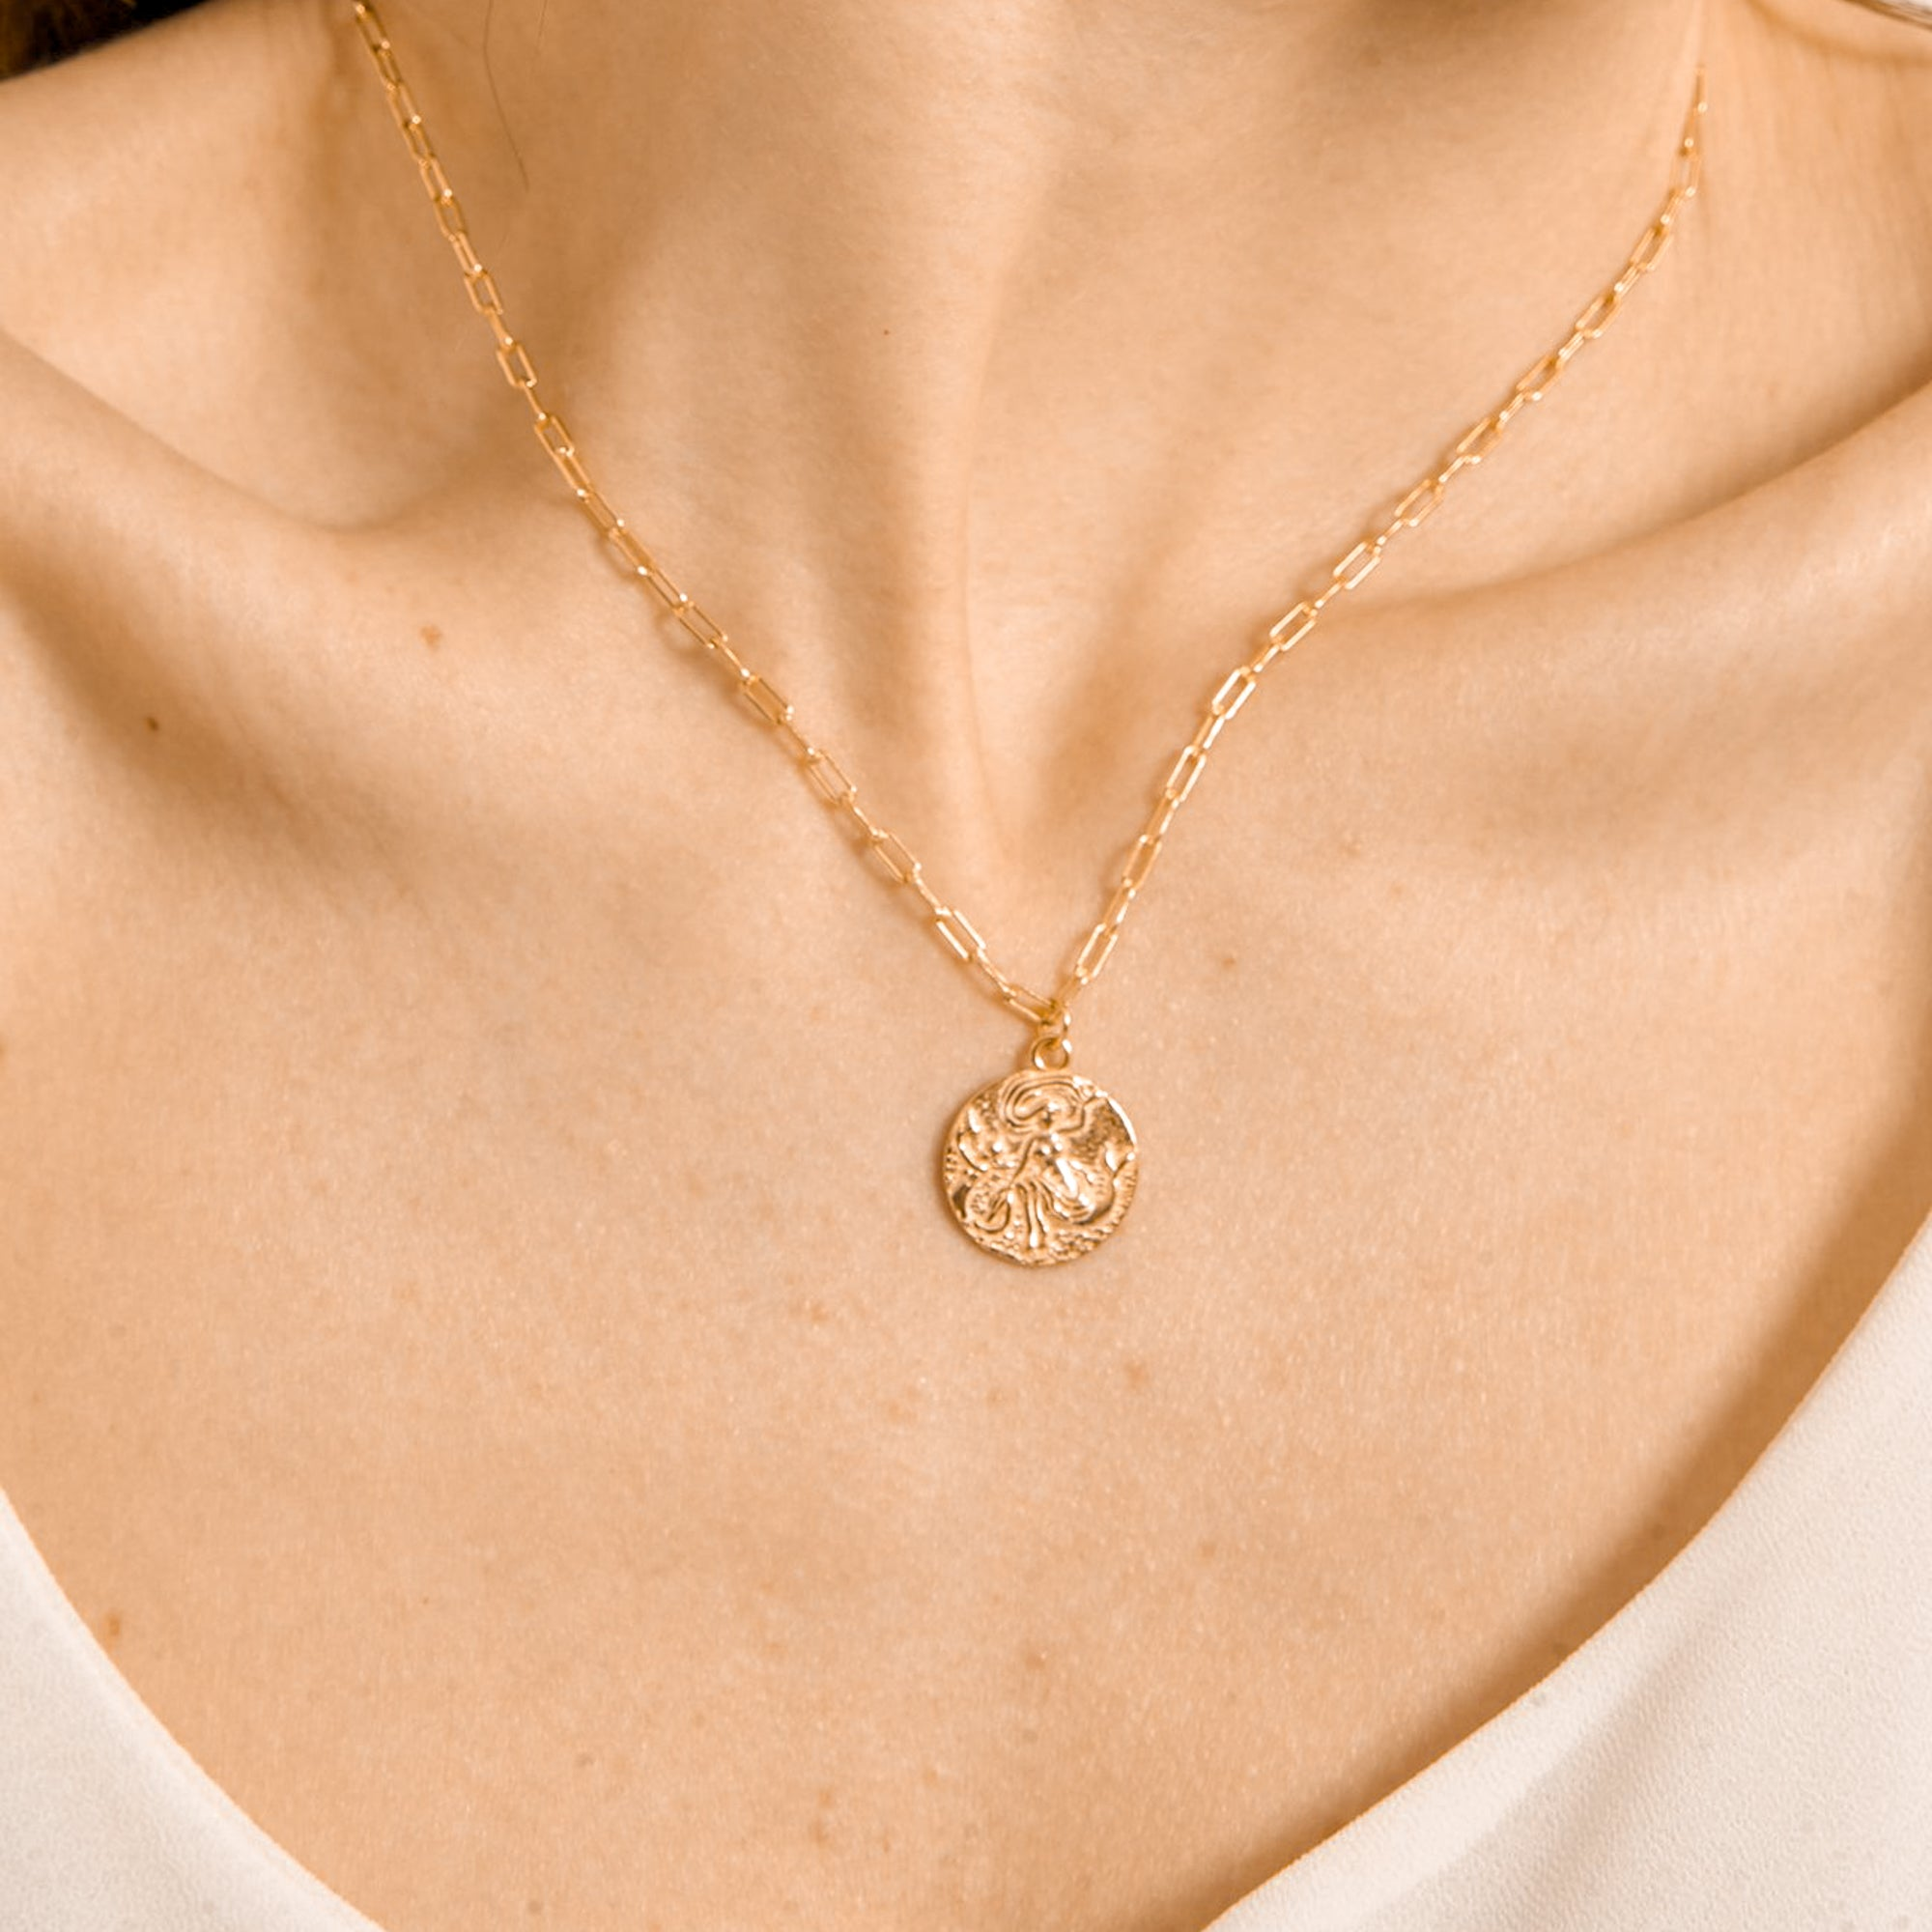 MERMAID COIN MEDALLION NECKLACE - 18K GOLD VERMEIL